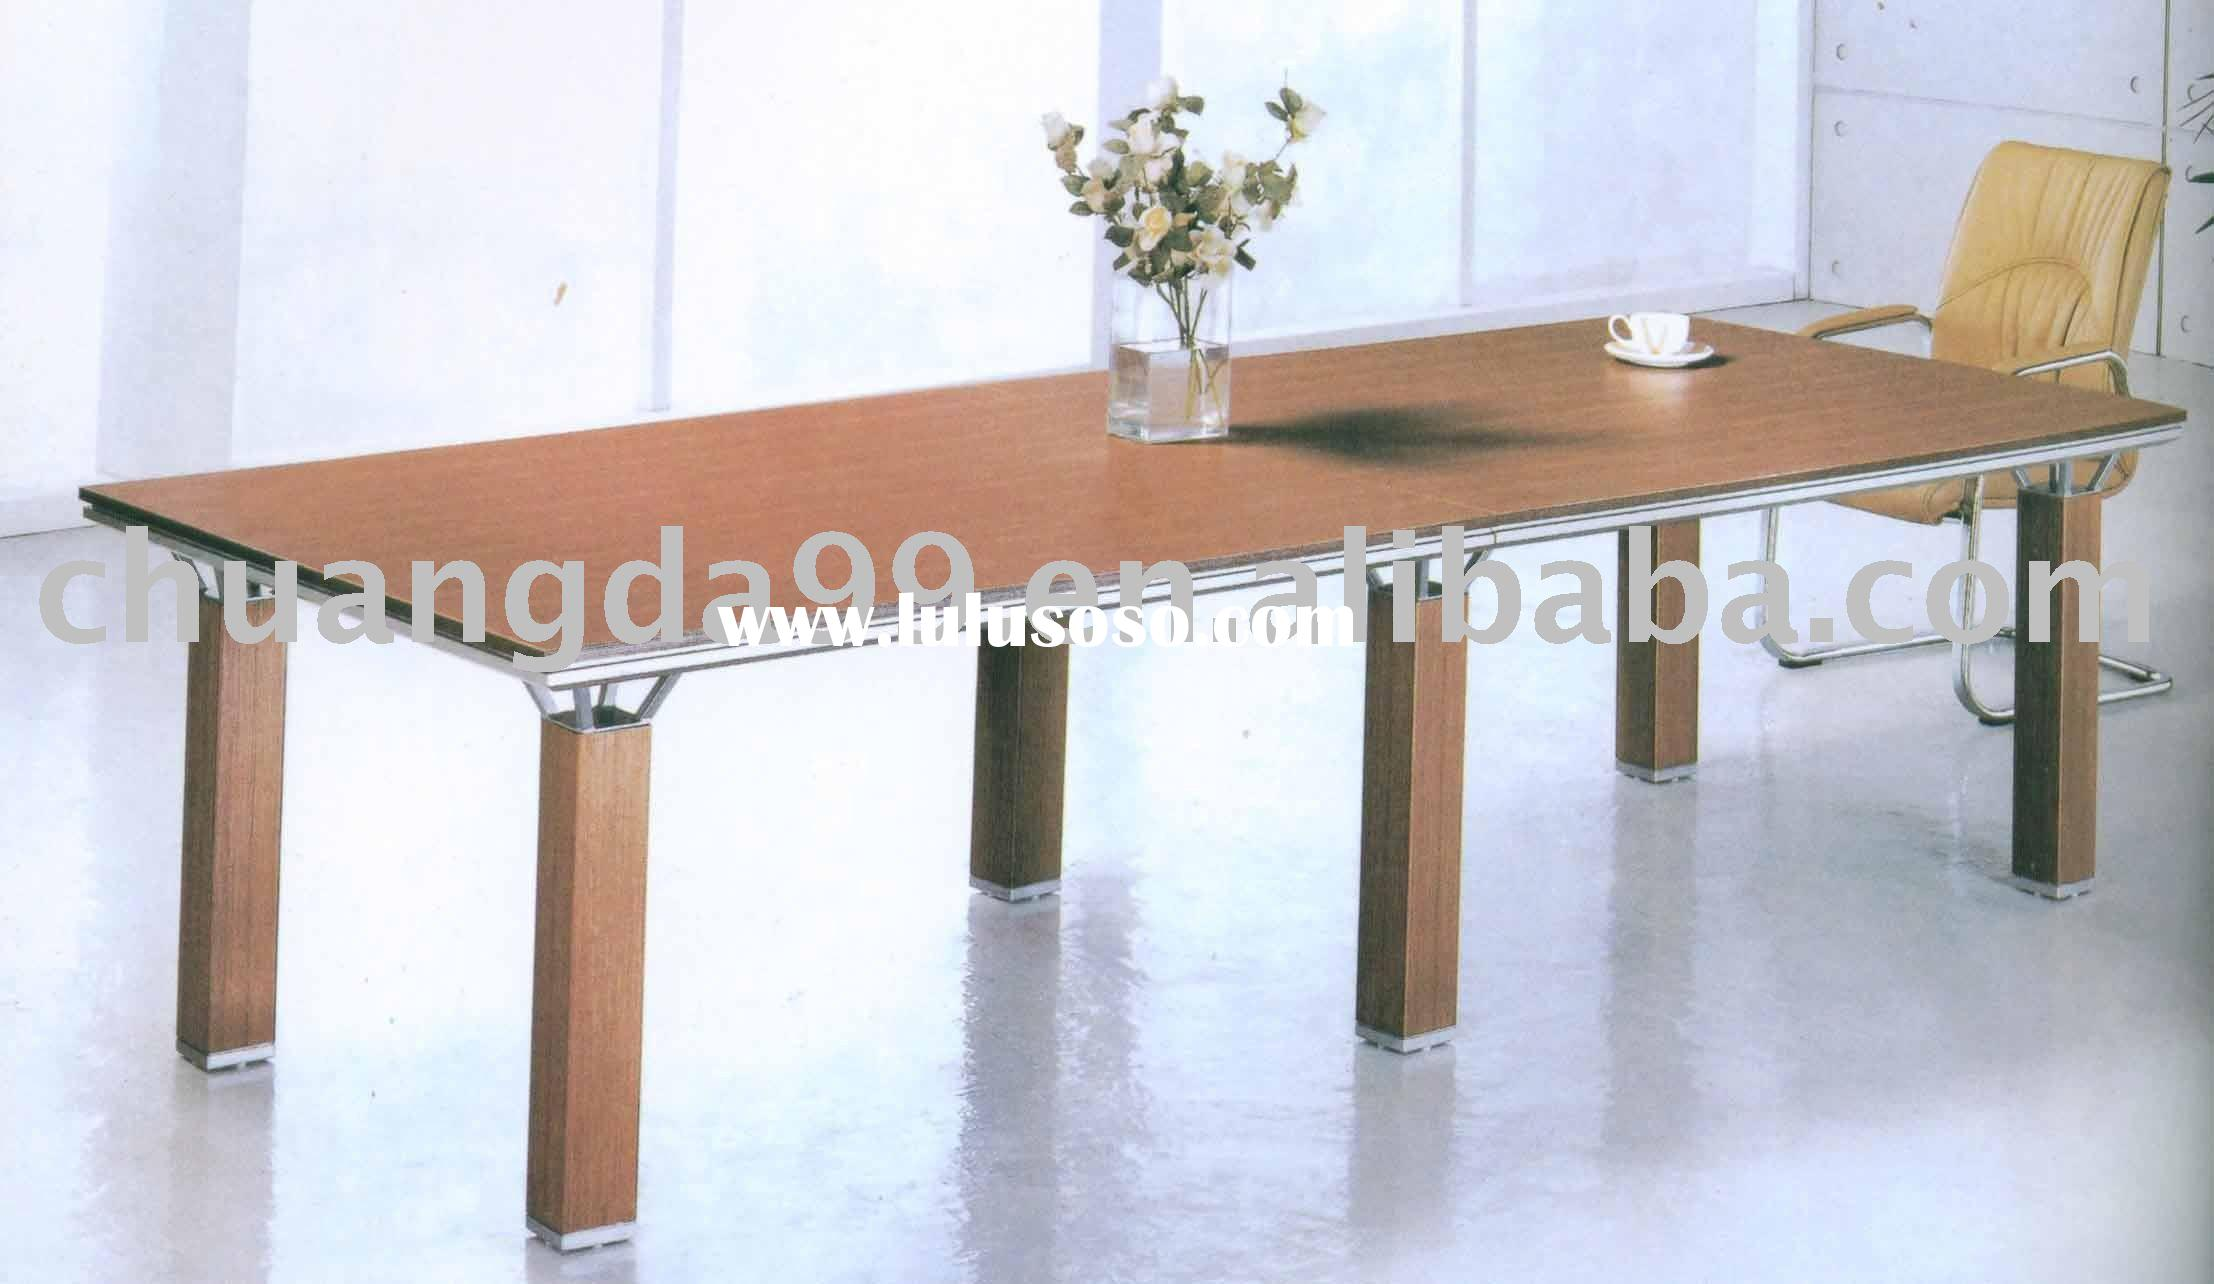 Meeting table meeting desk conference table conference desk meeting room furniture ON SALE